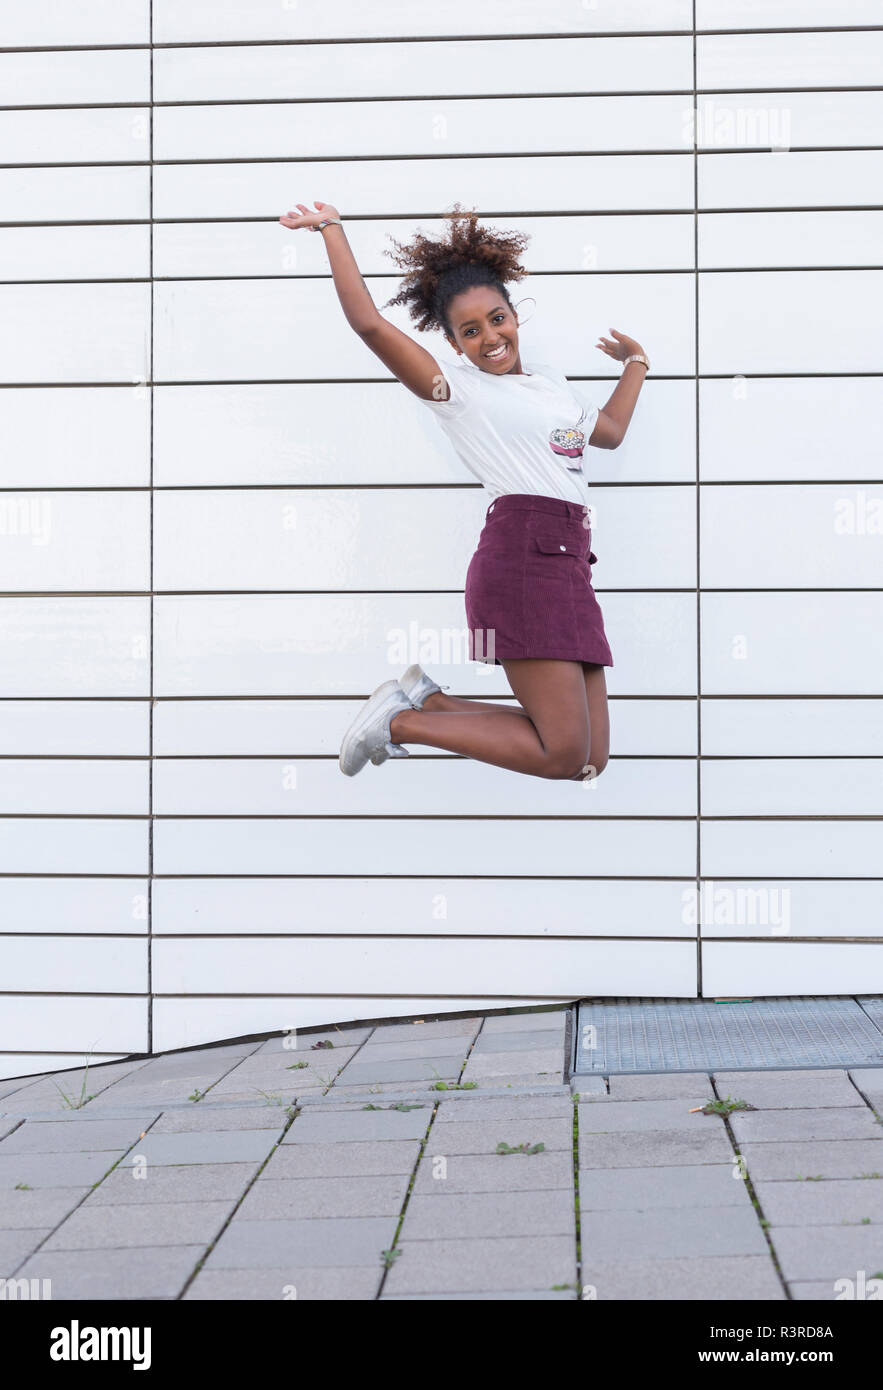 Portrait of laughing young woman jumping in the air - Stock Image